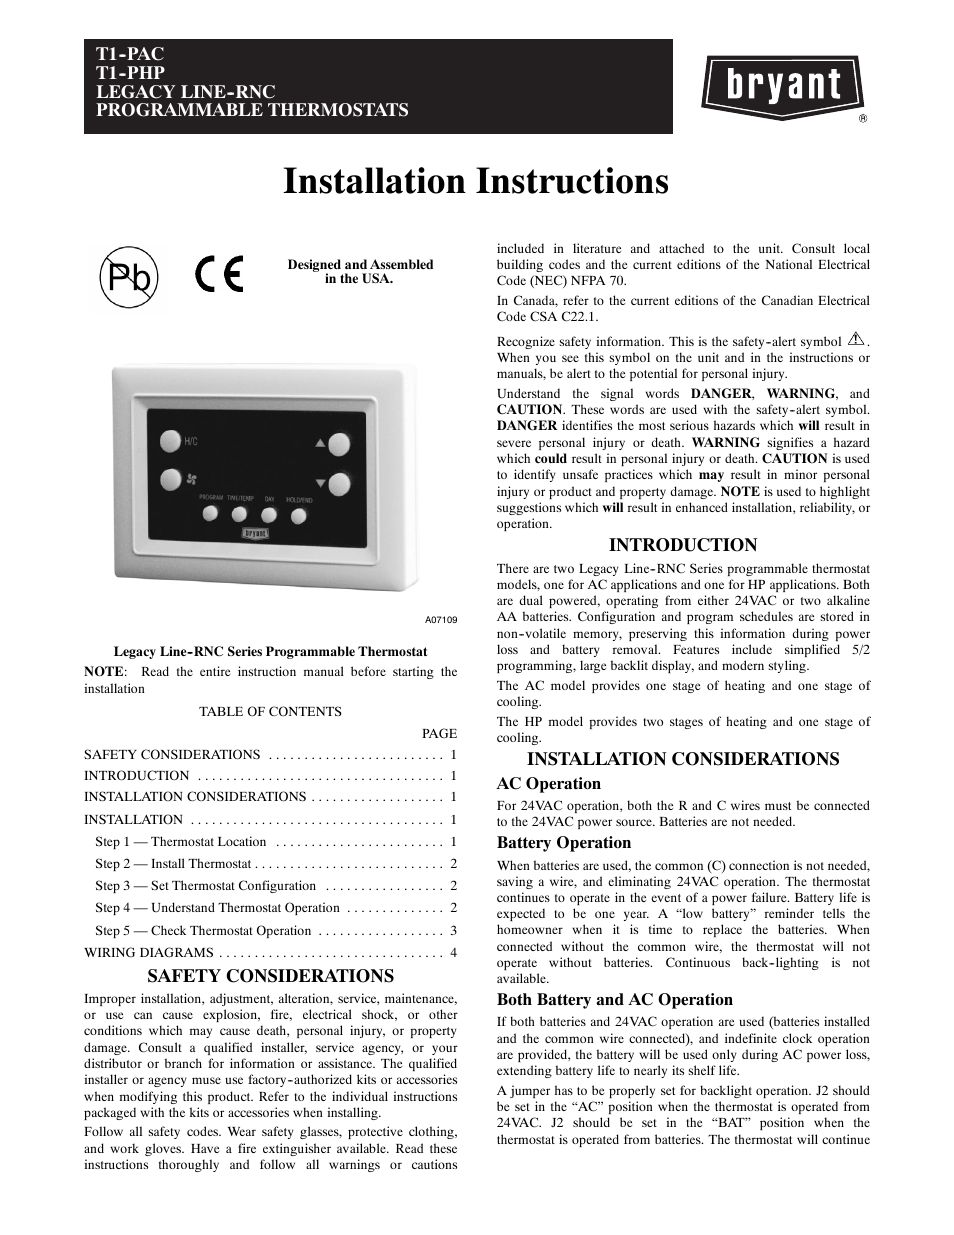 Bryant Thermostat Wiring Diagram T1 Data Hvac Sequencer Php User Manual 8 Pages Also For Pac Electric Heat